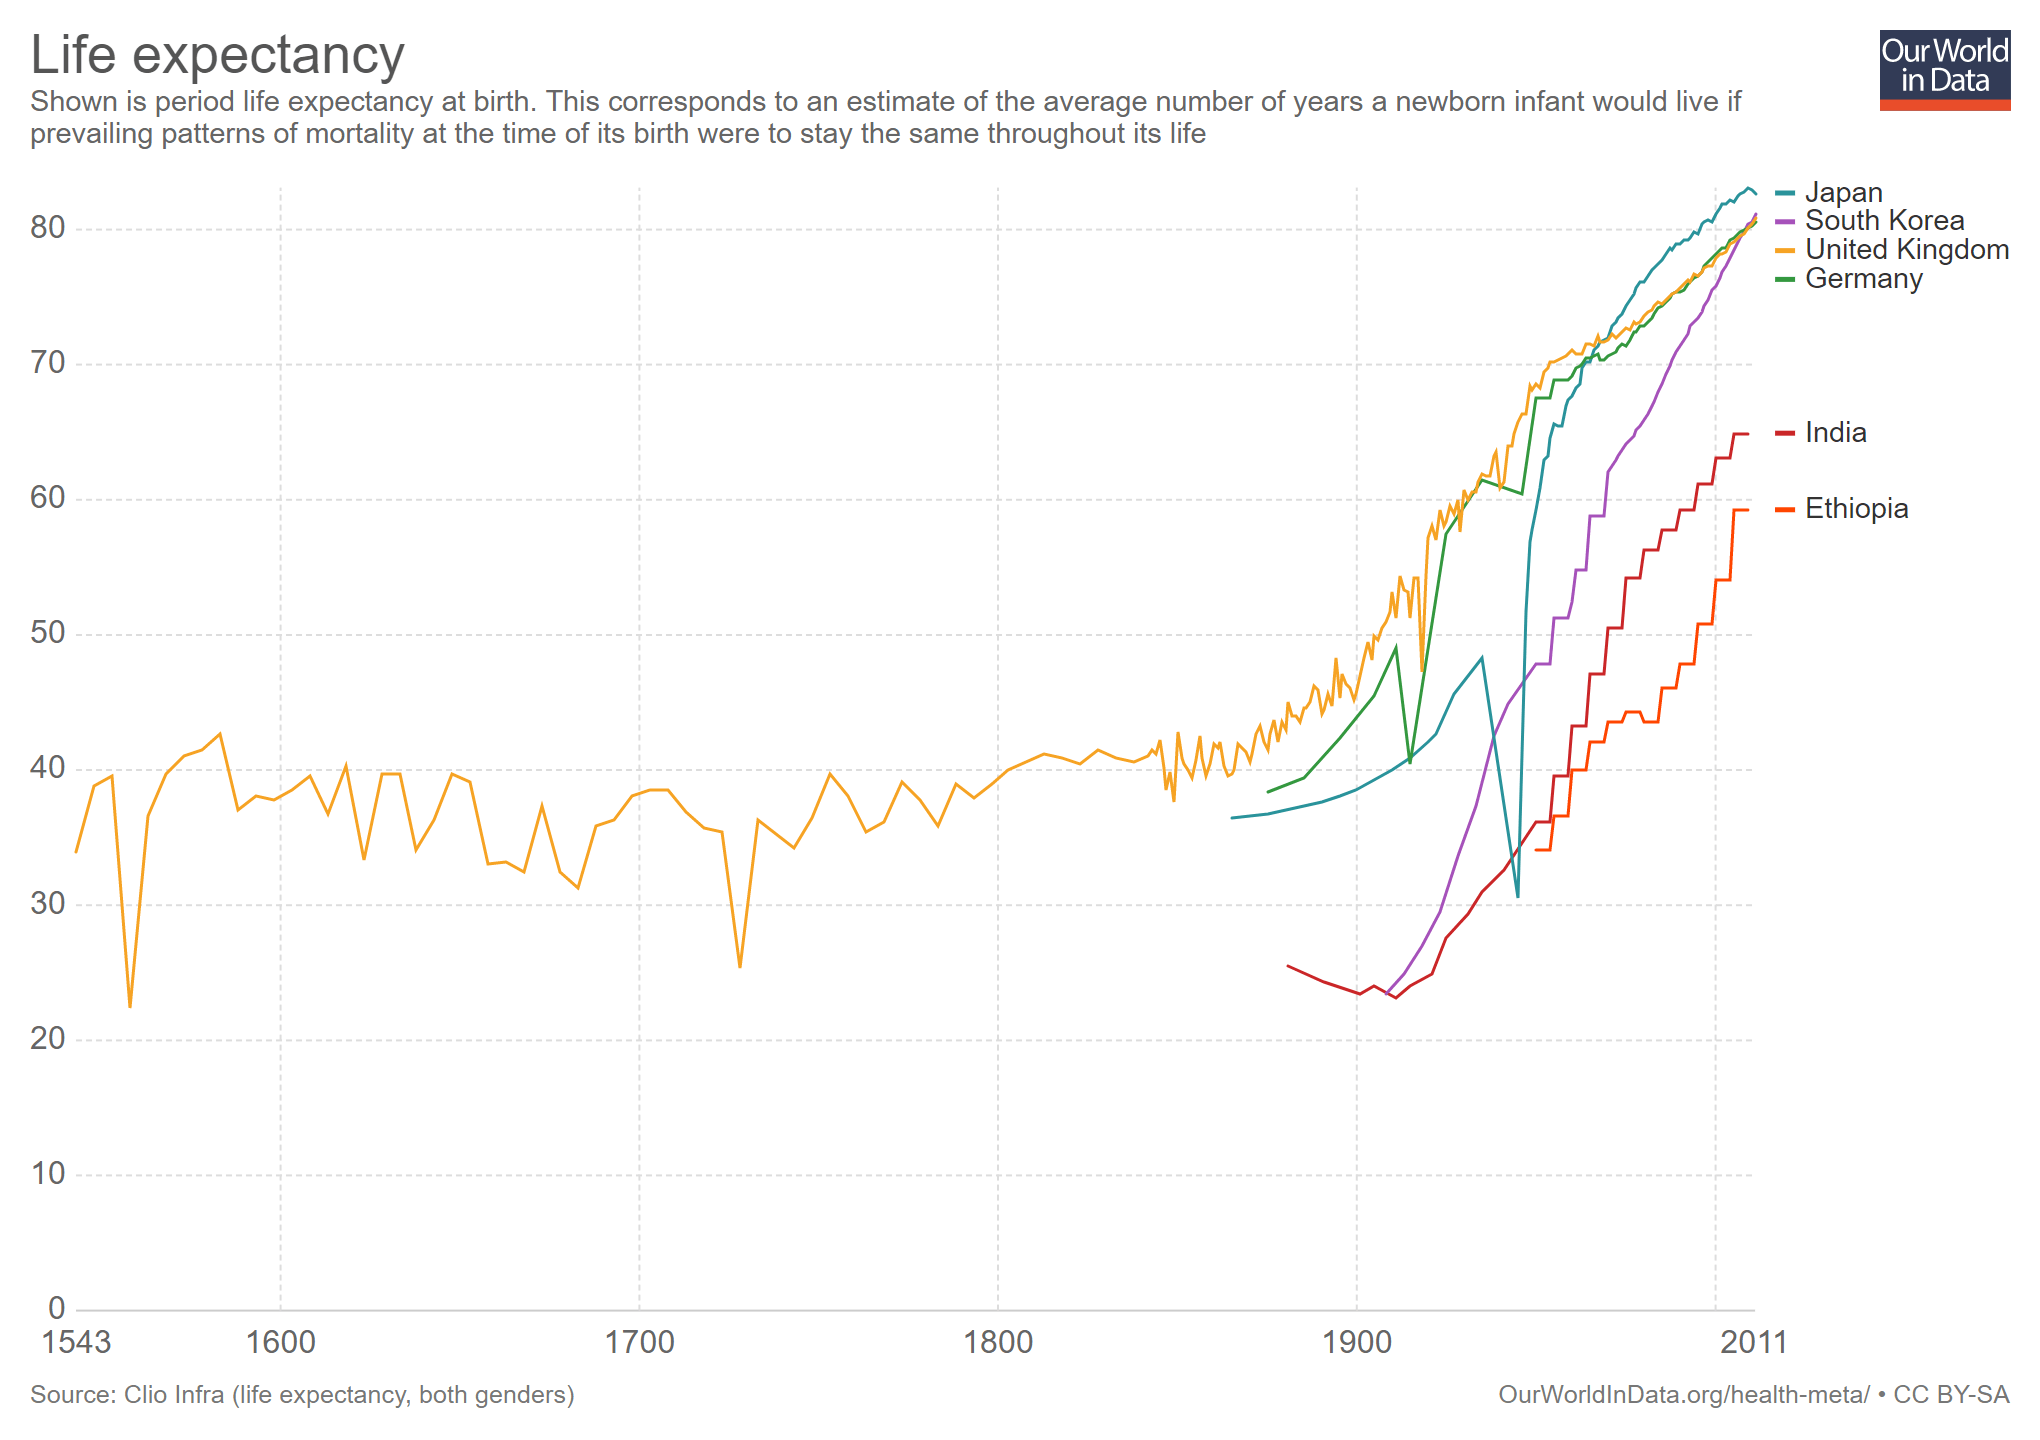 global-world-life-expectancy-1543-2011